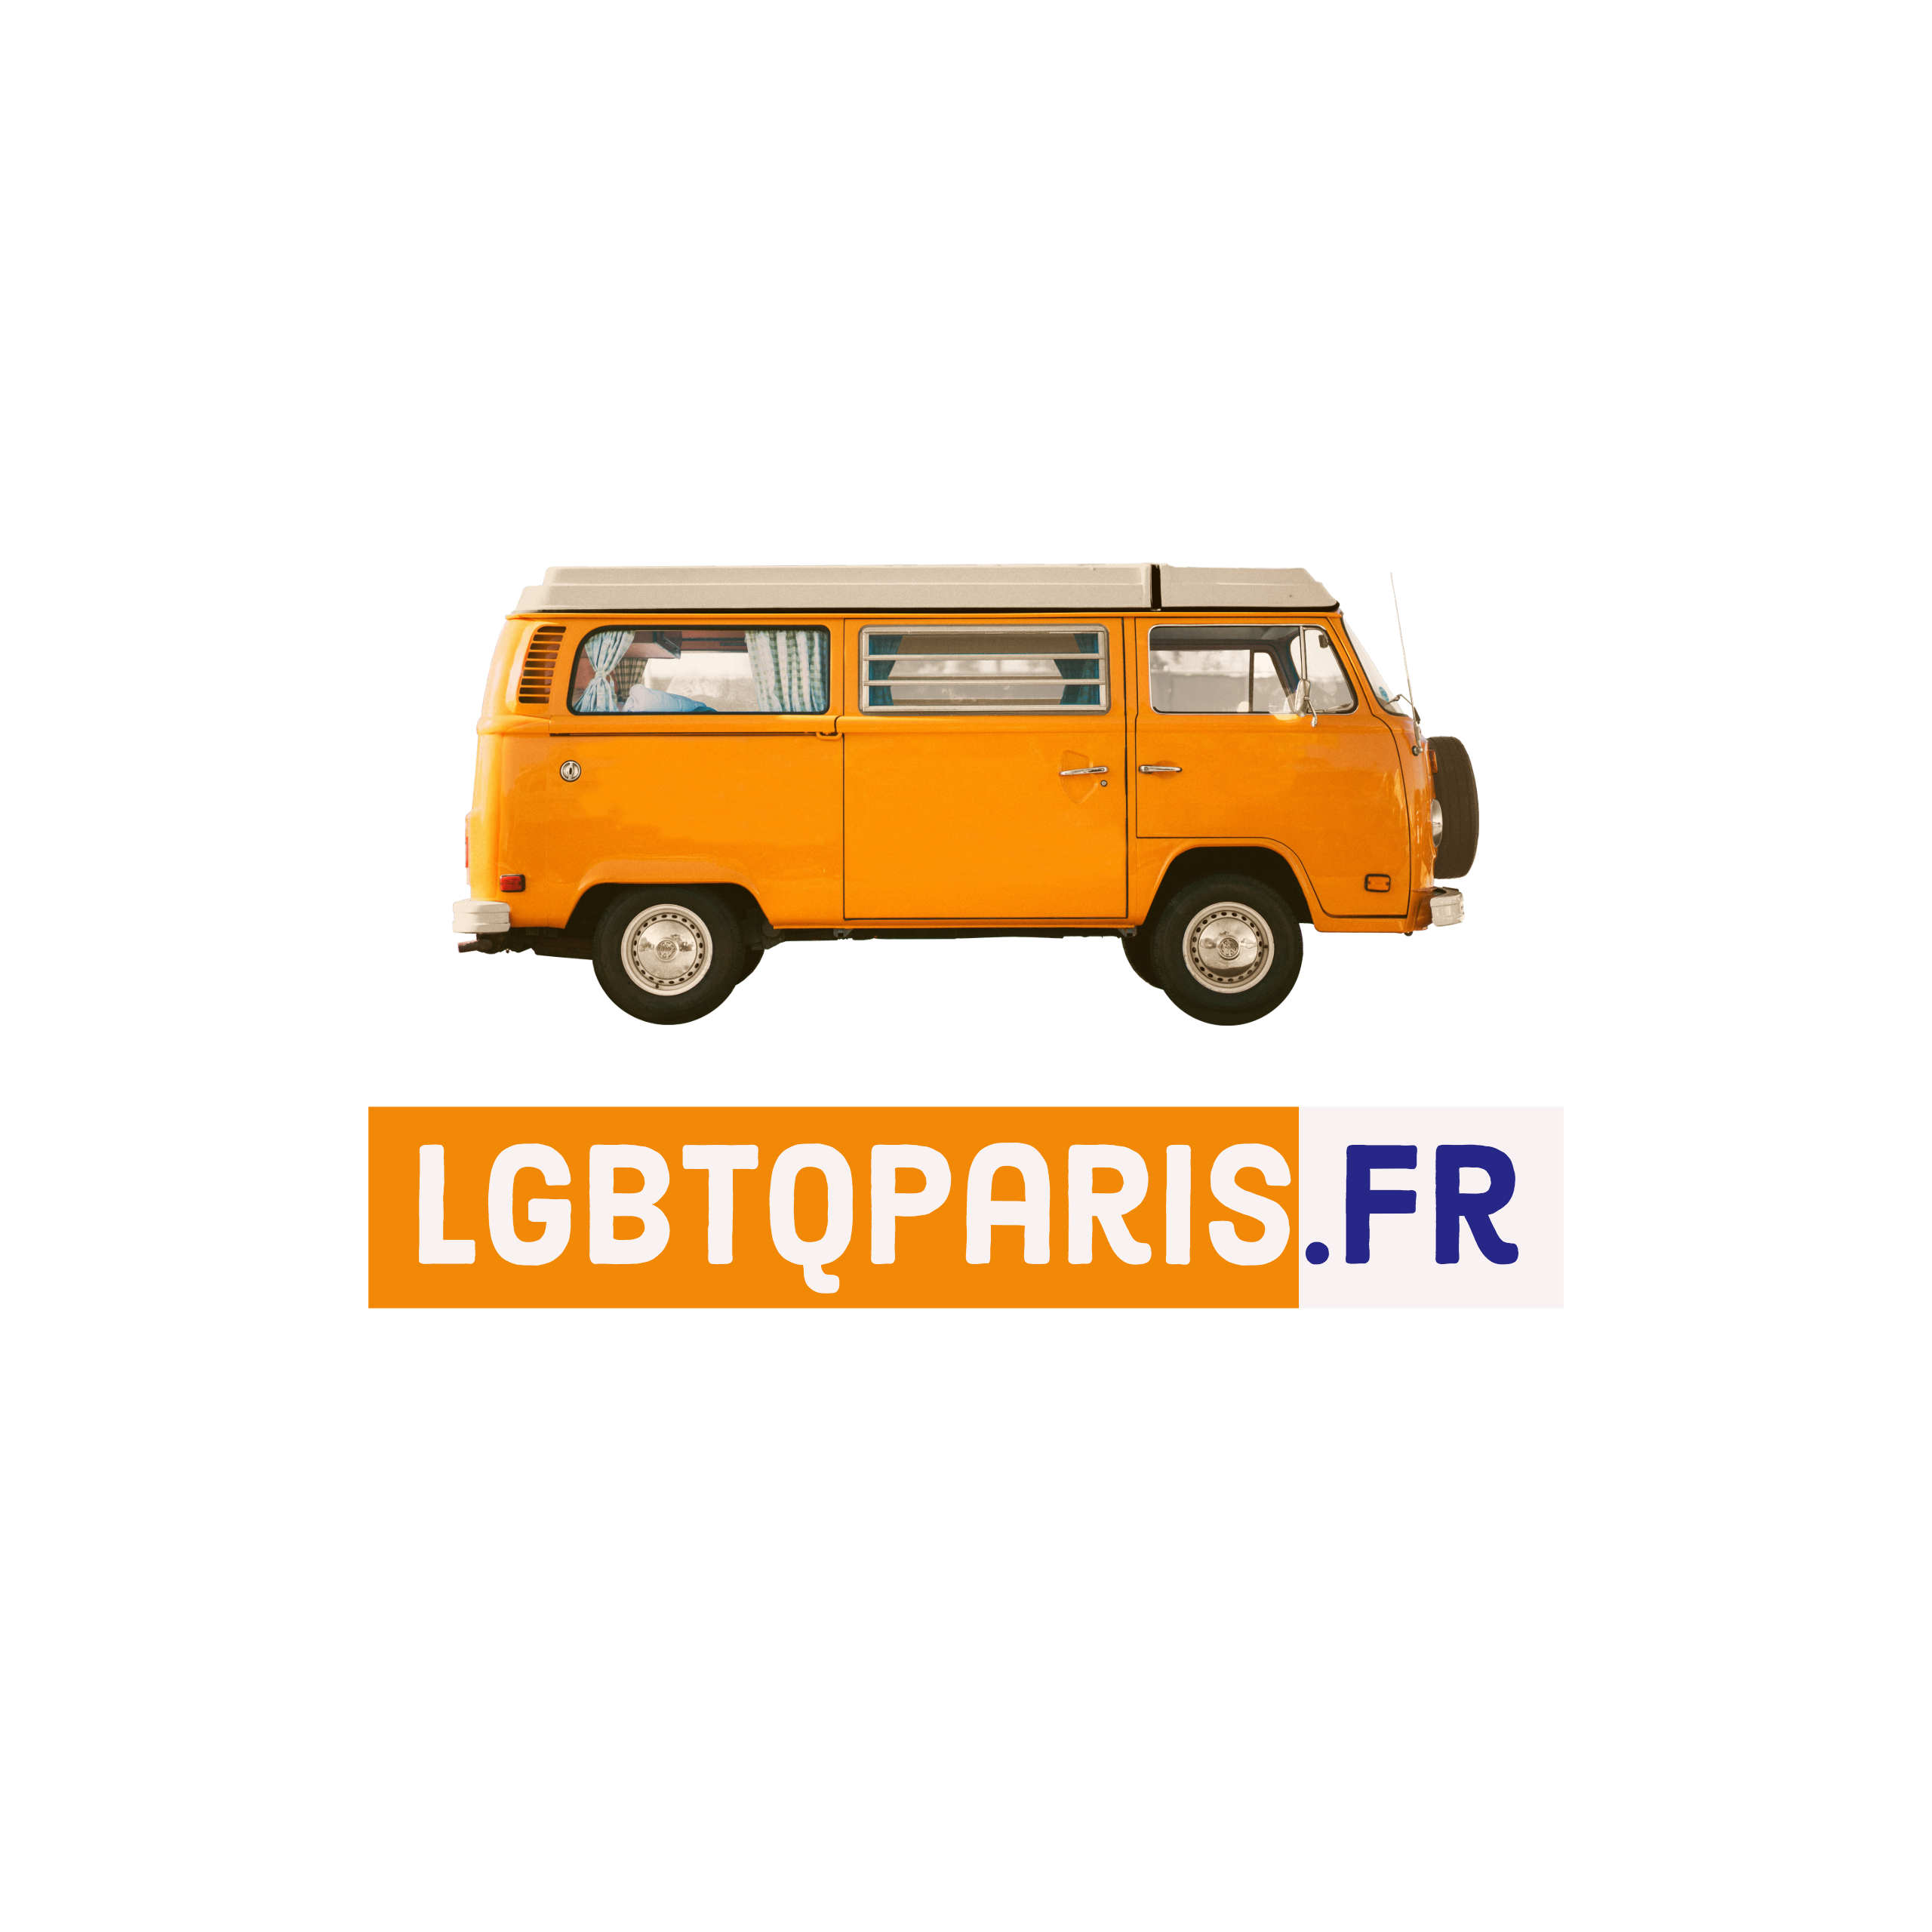 LGBTQ PARIS